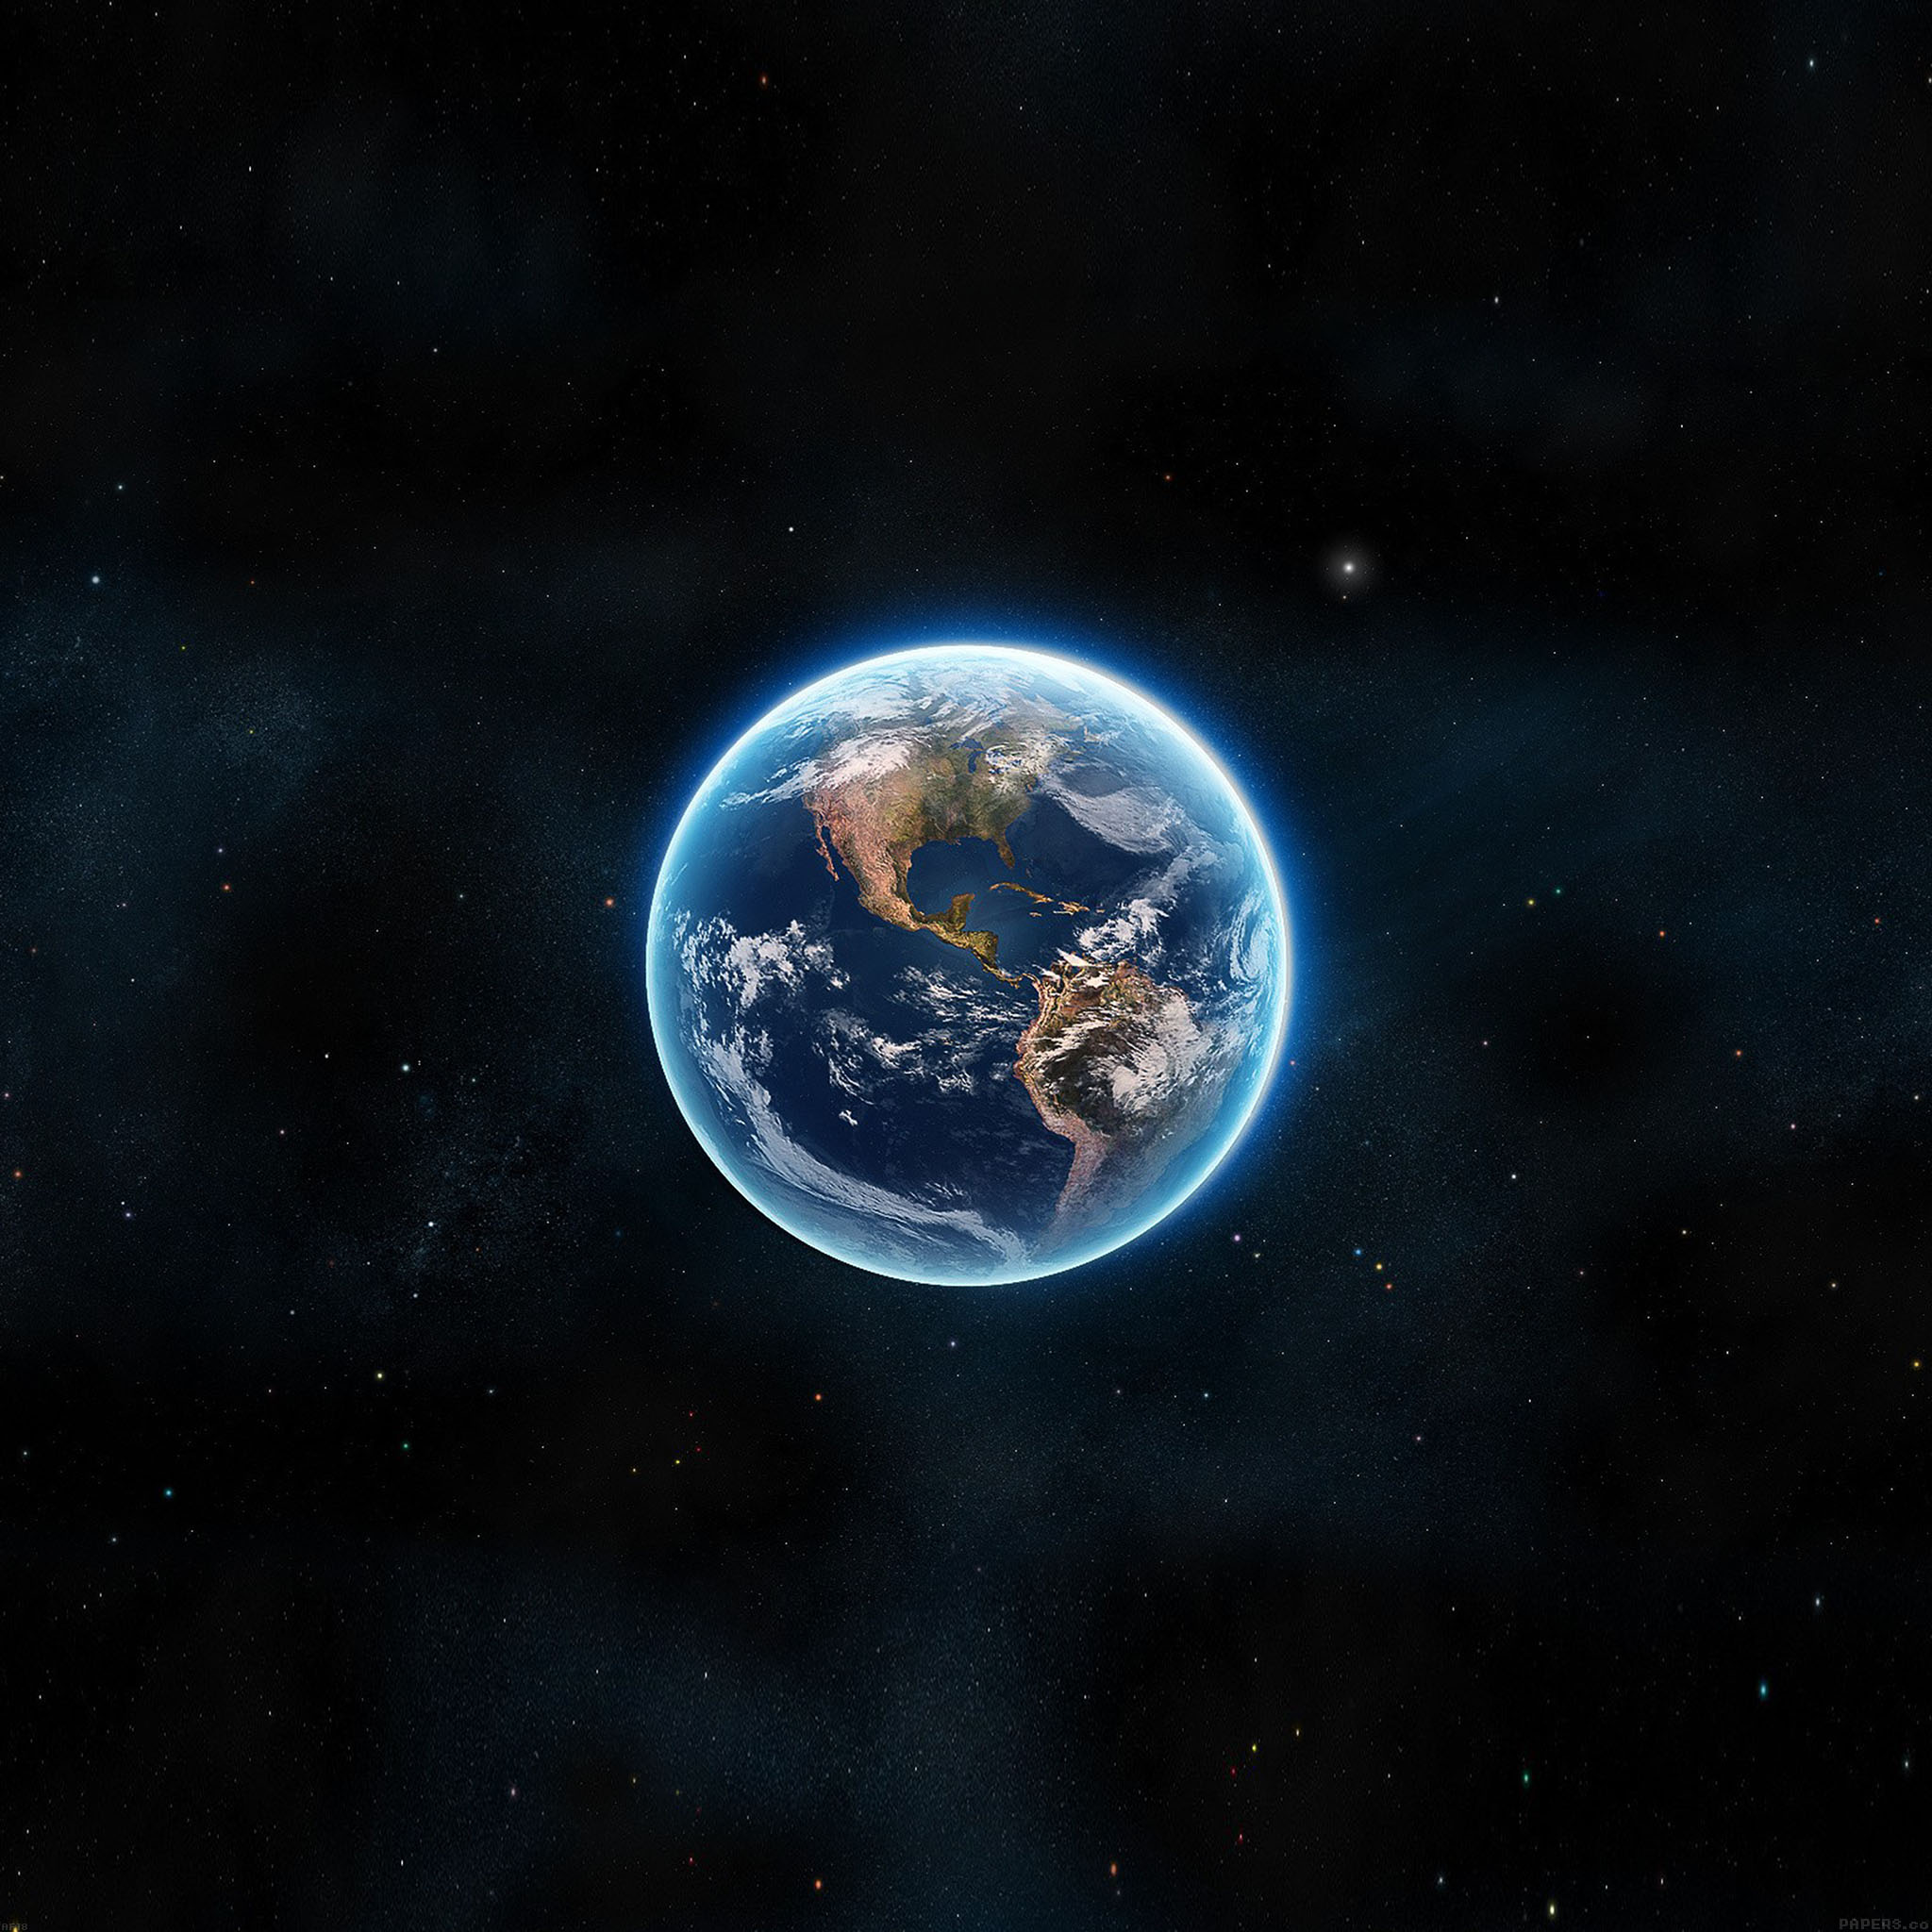 Google Earth Wallpaper: Af18-earth-view-from-space-satellite-illust-art-wallpaper